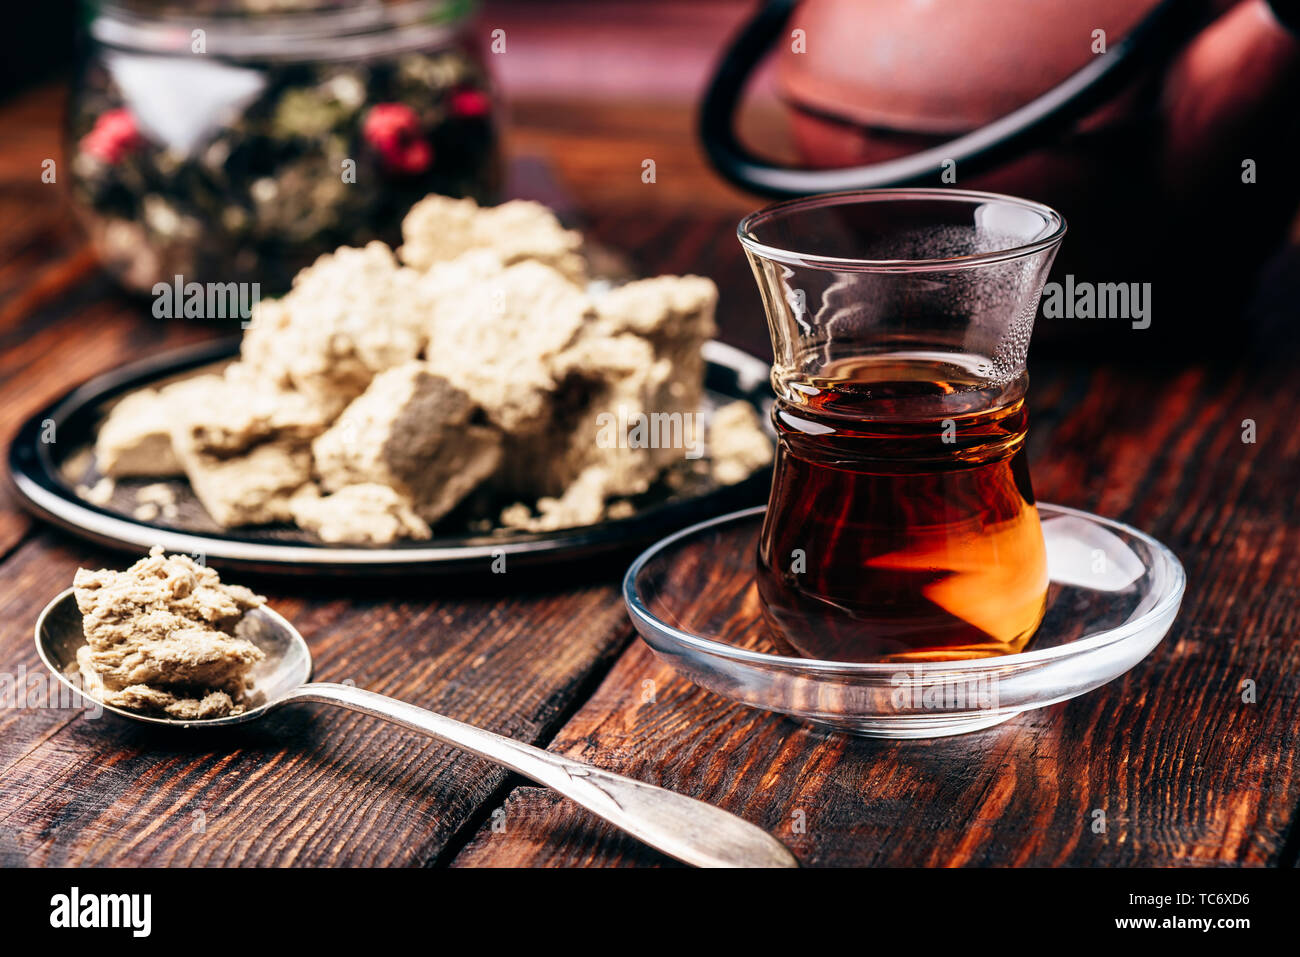 Black tea in armudu glass and spoonful of sunflower halva - Stock Image